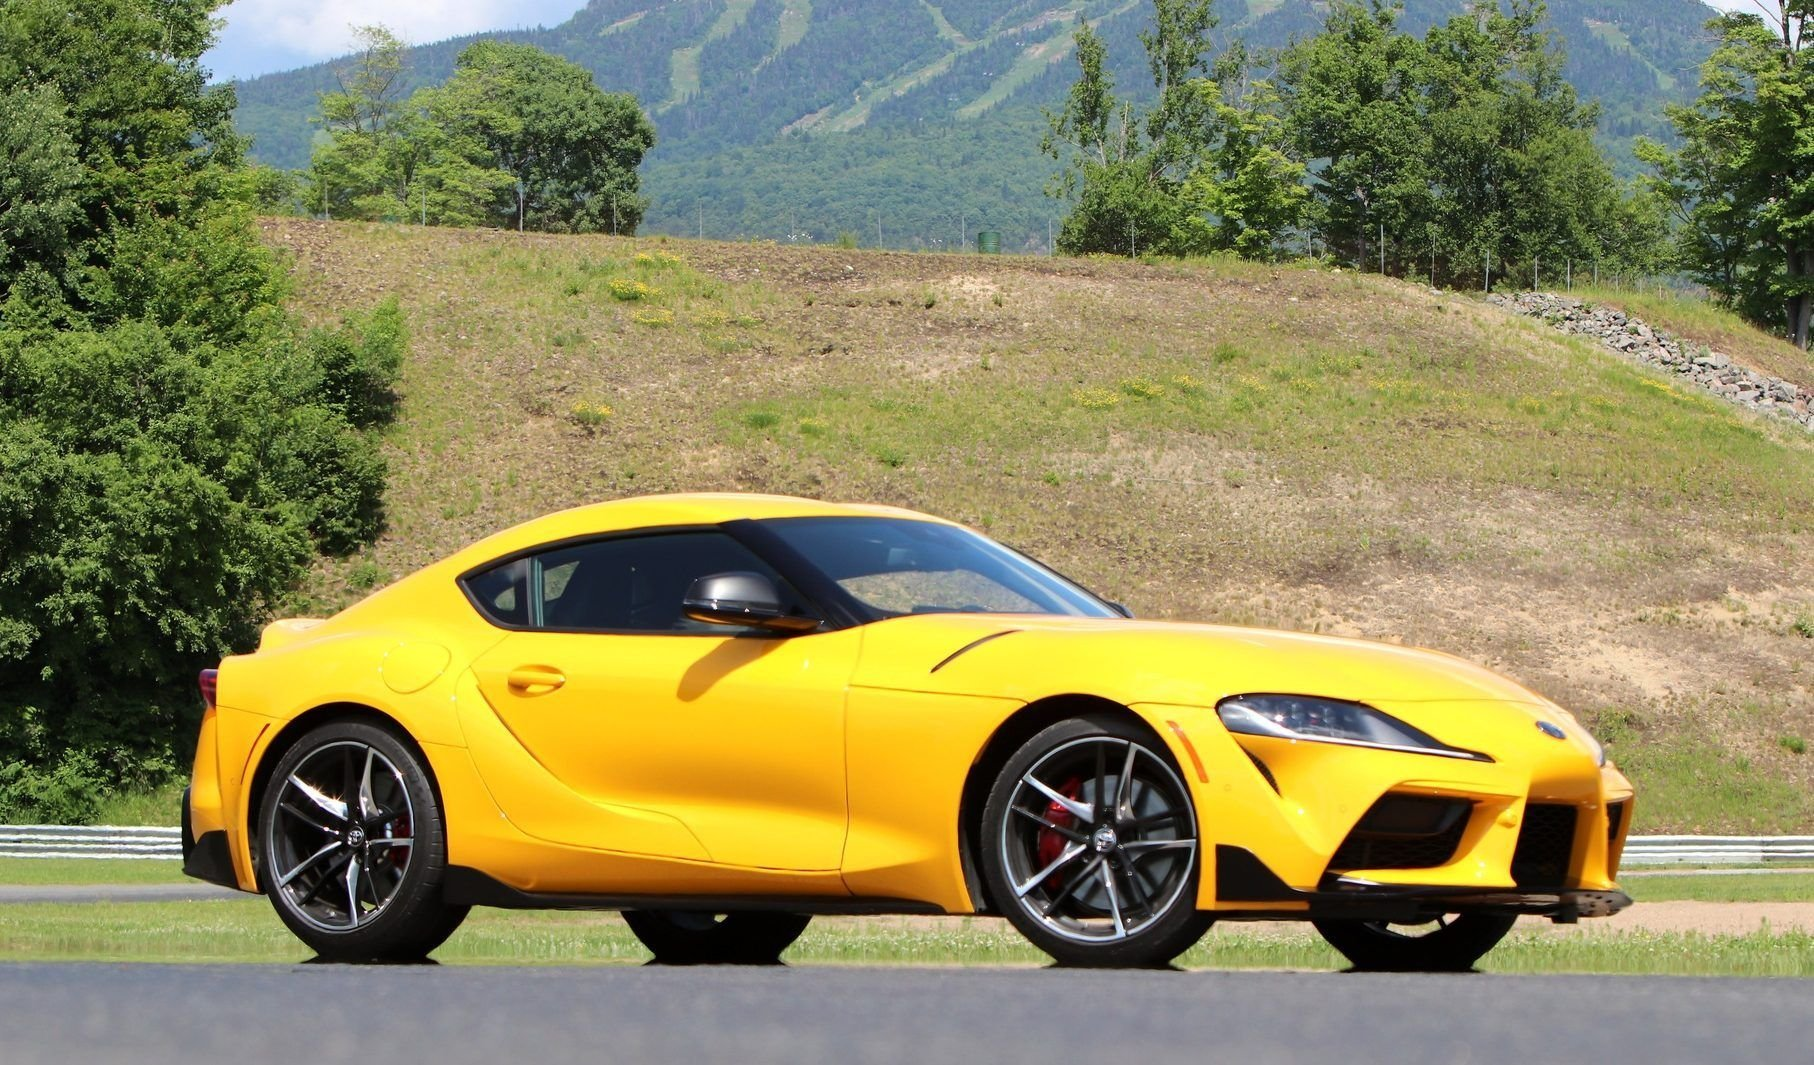 These Are The Absolute Best Daily Driver Sports Cars You Can Buy